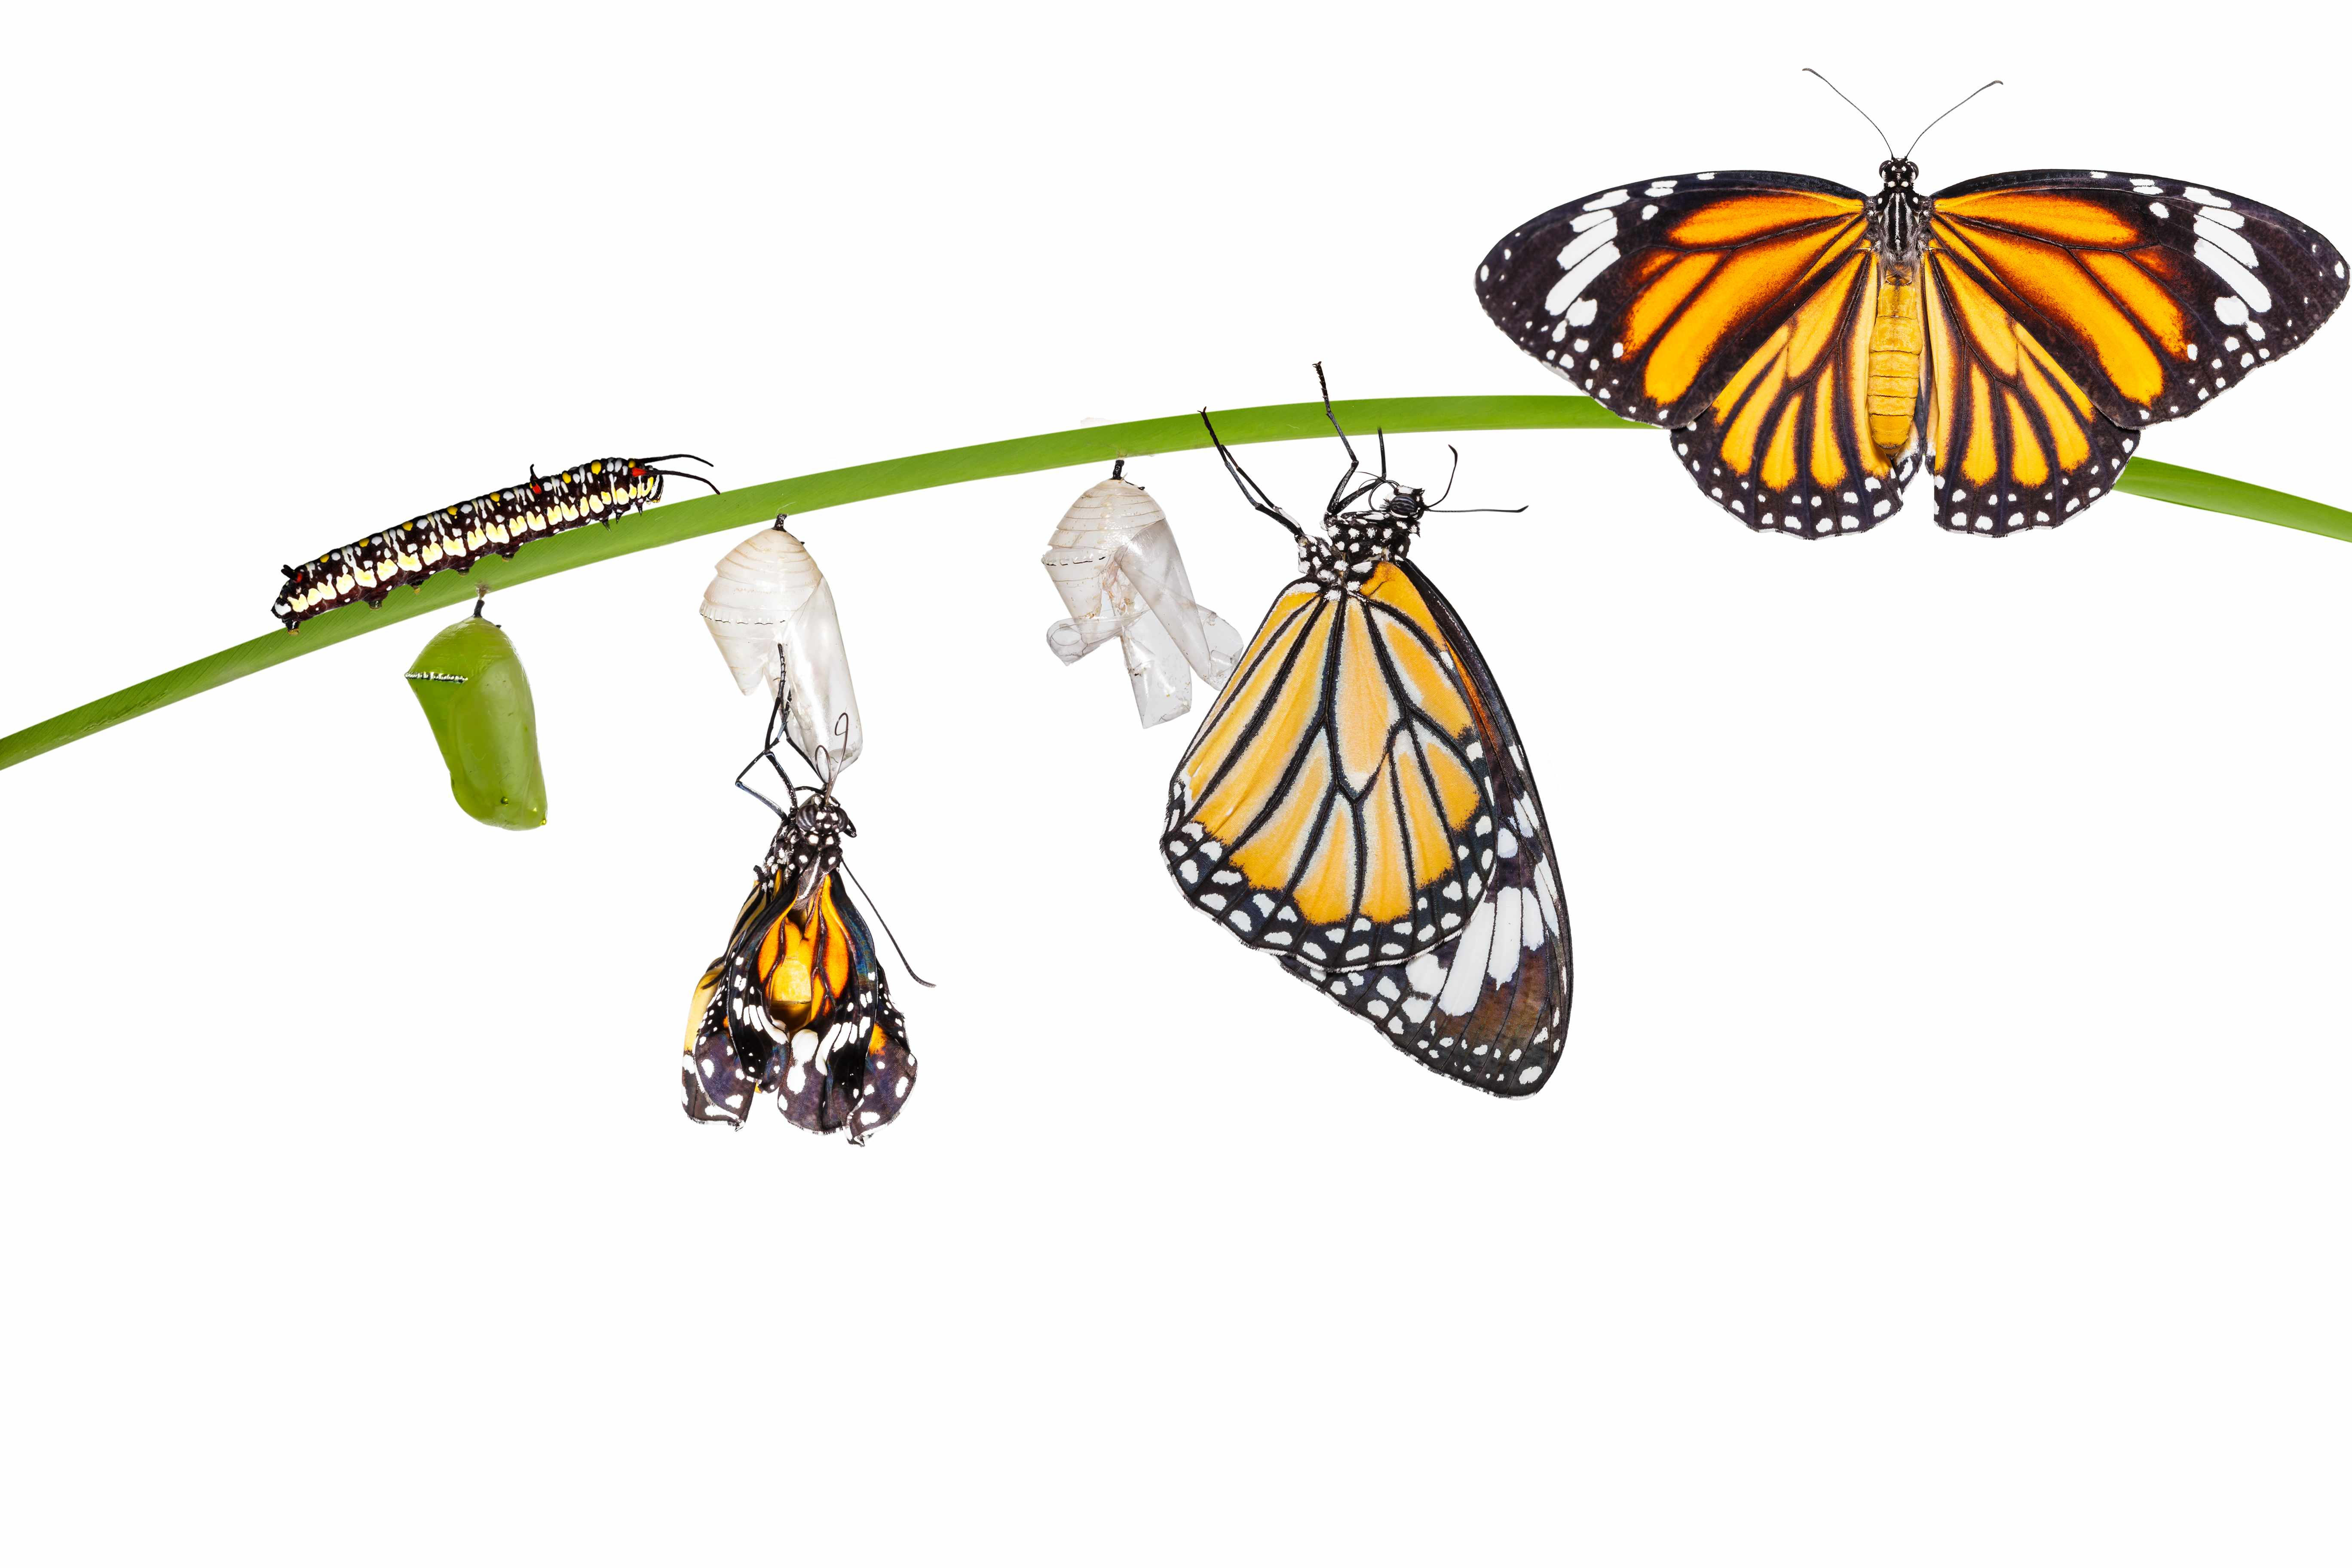 Caterpillar turning into a butterfly process. Caterpillar life cycle. © Mathisa S/Getty